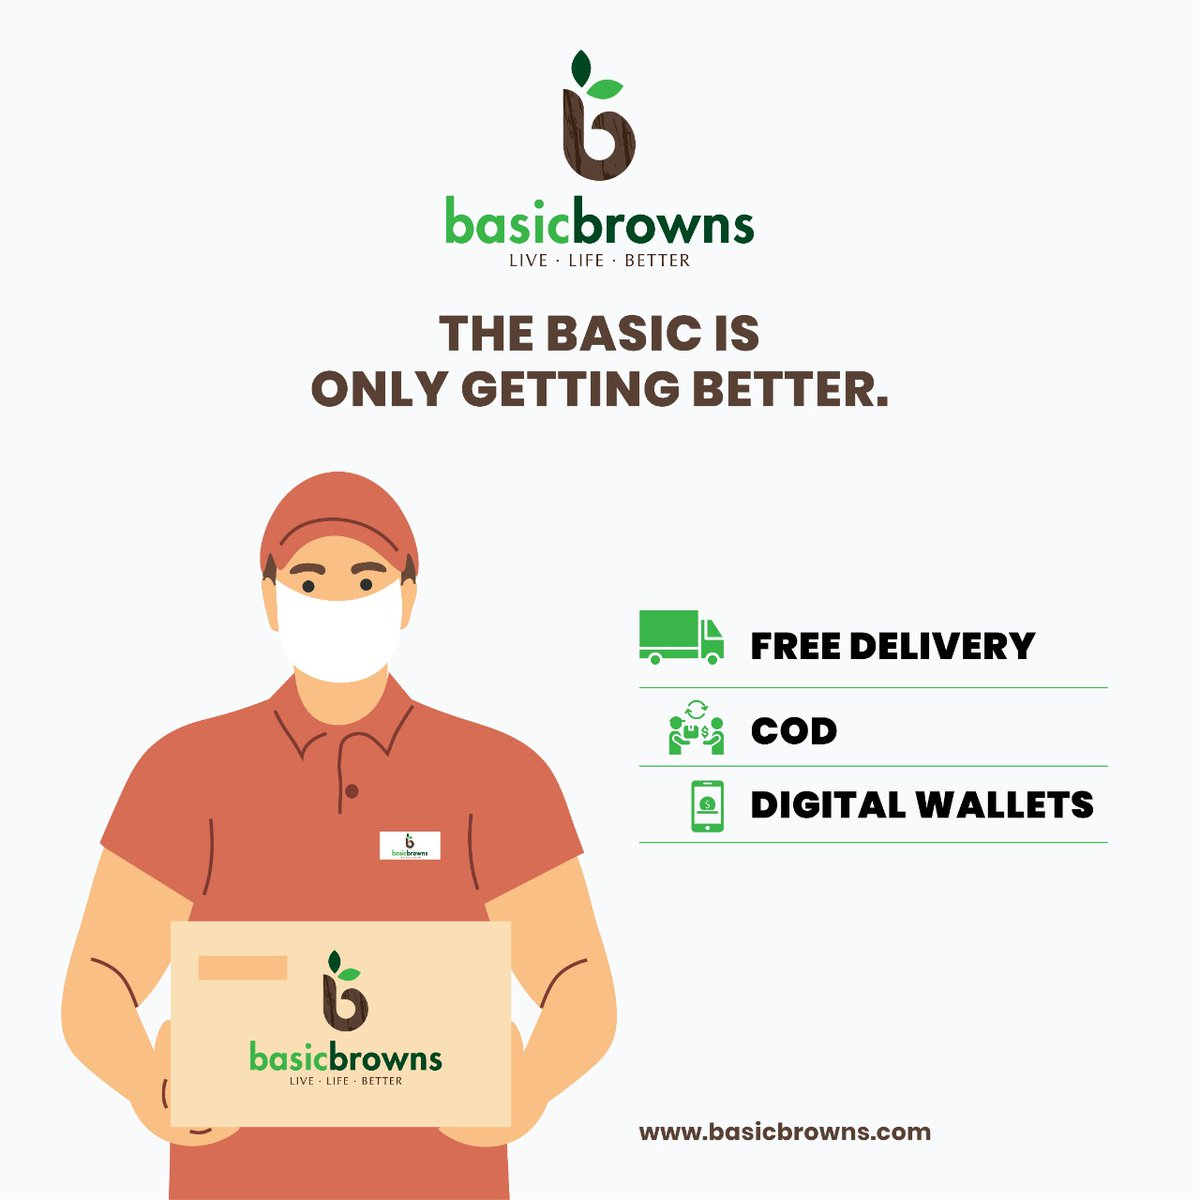 We are now starting with free delivery and are present on all digital wallet platforms. Now the change to a healthier lifestyle is easier than ever.  https://t.co/mOweDKhD4N  #basicbrowns #livelifebetter #forabettertomorrow #organicfood #organiclifestyle #sustainableliving https://t.co/dK3GPPEwJG